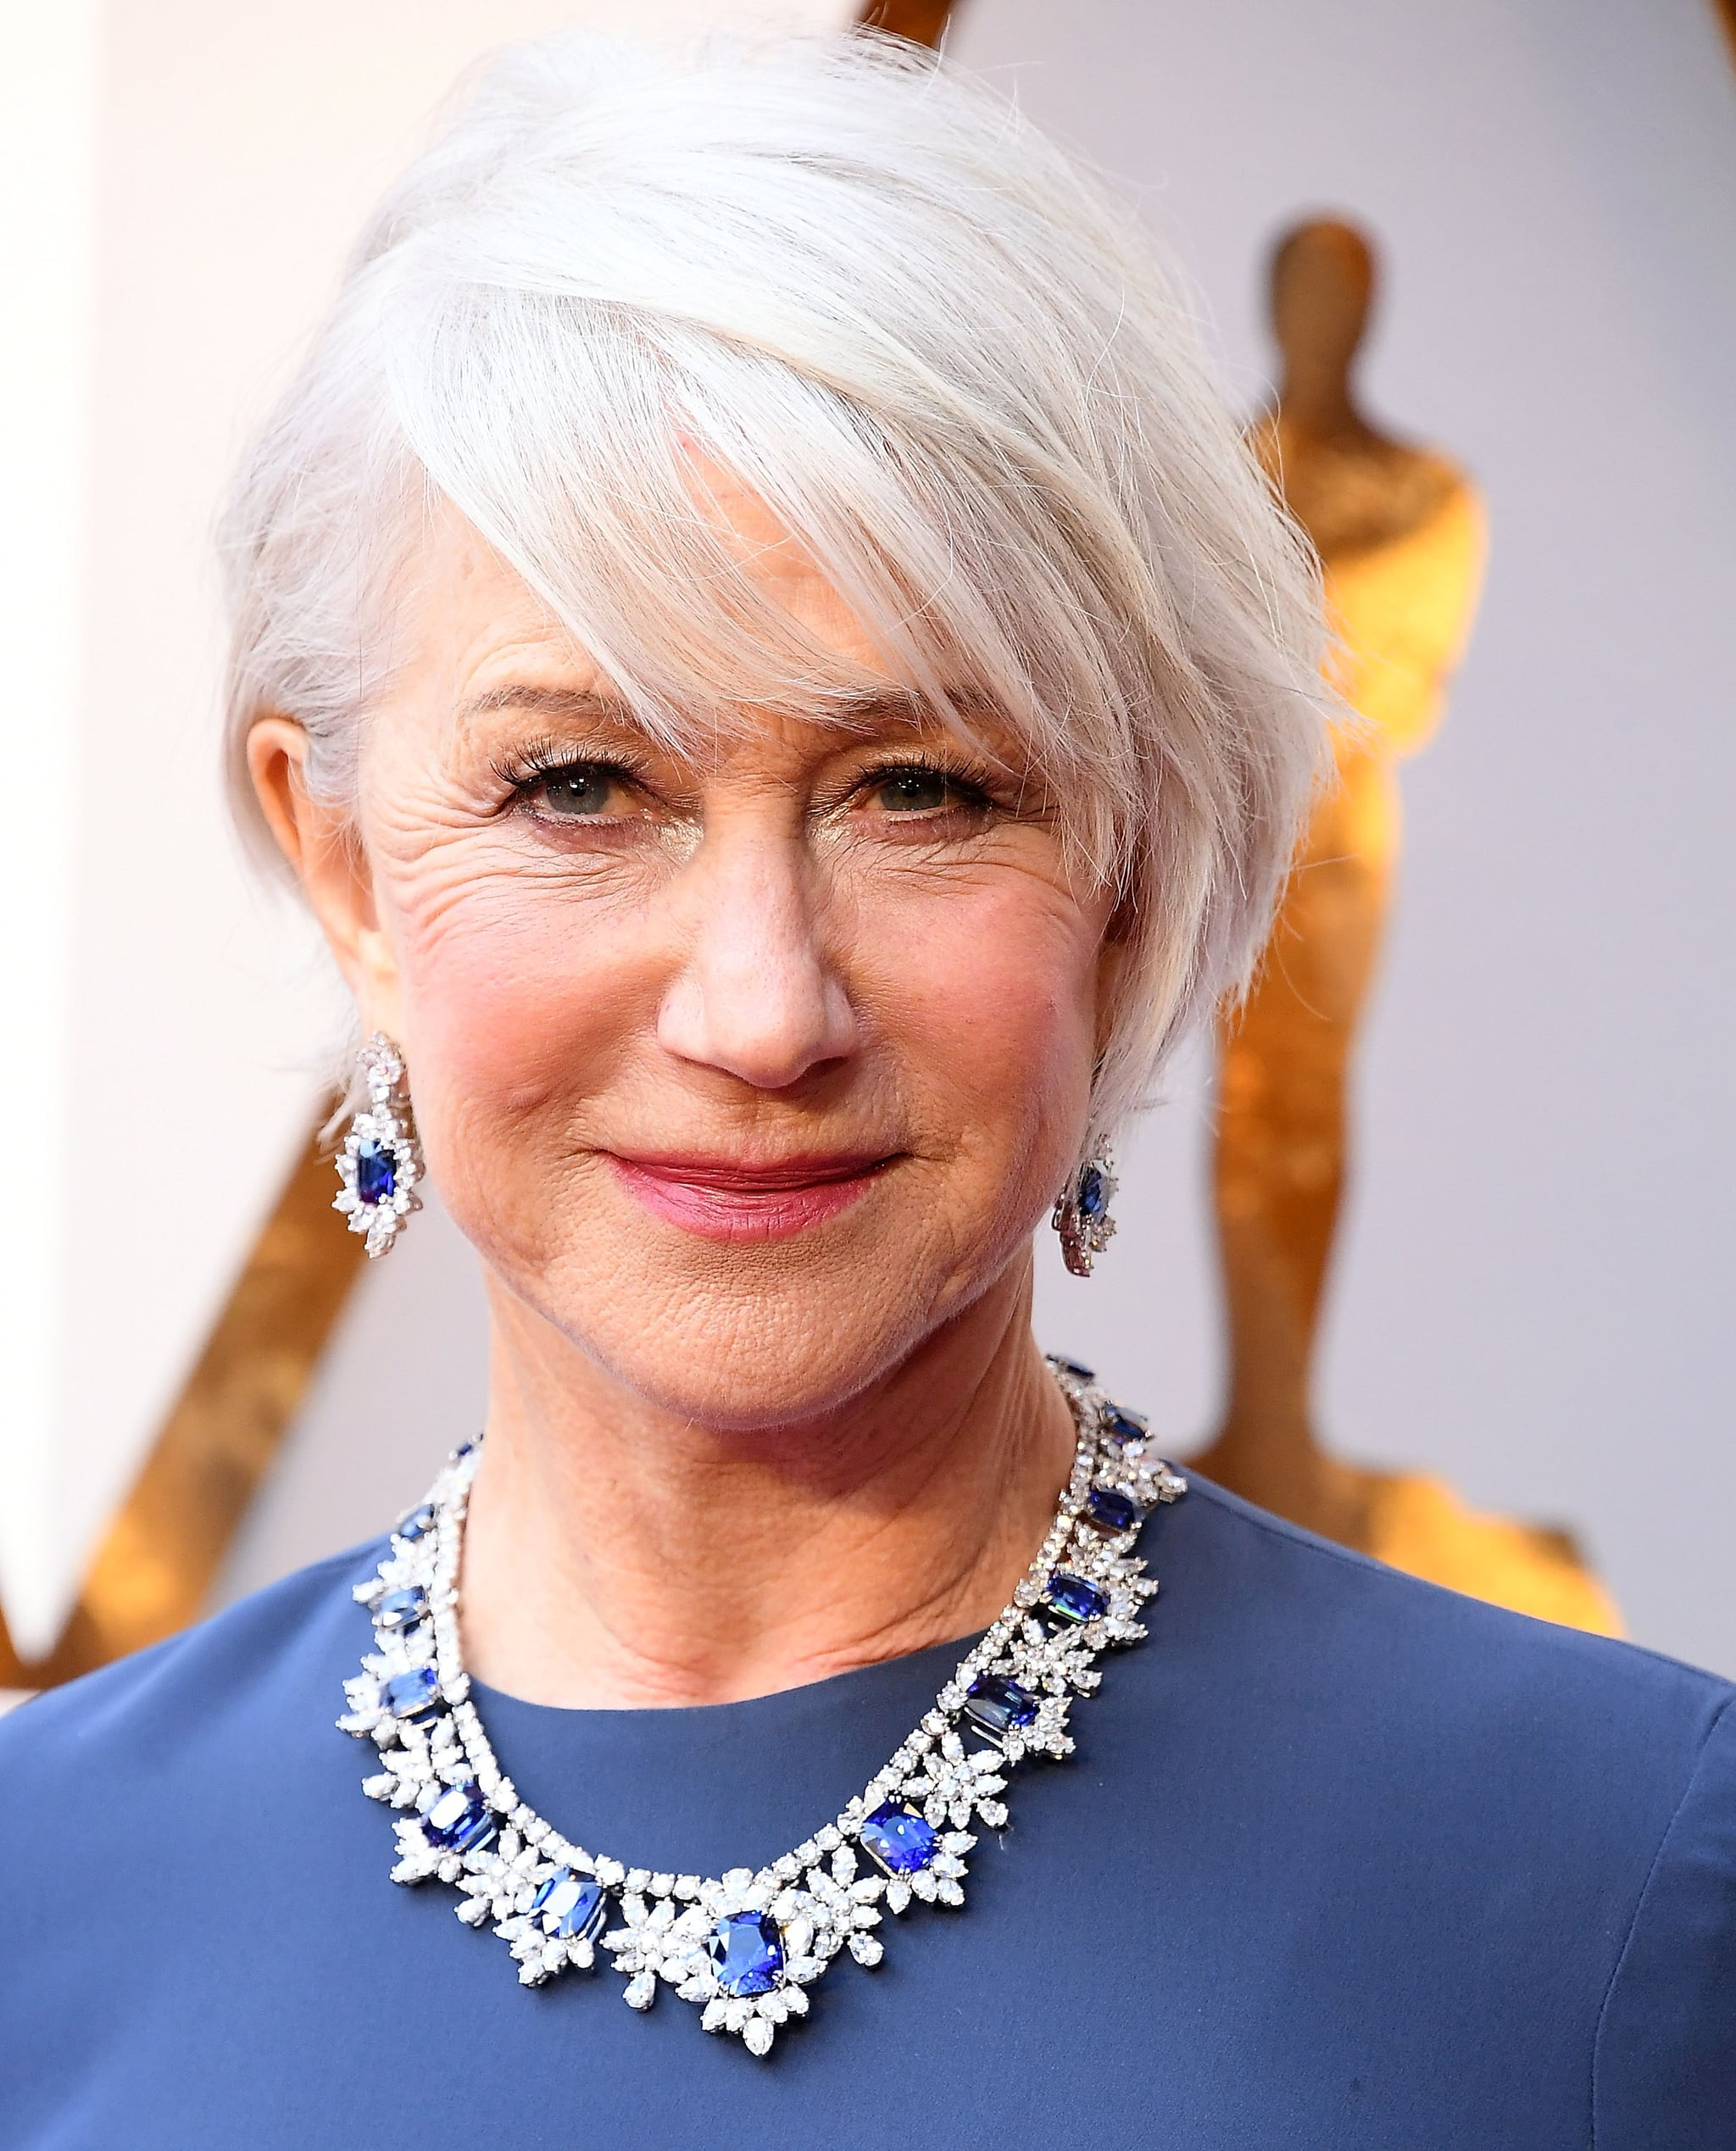 HOLLYWOOD, CA - MARCH 04:  Helen Mirren arrives at the 90th Annual Academy Awards at Hollywood & Highland centre on March 4, 2018 in Hollywood, California.  (Photo by Steve Granitz/WireImage)